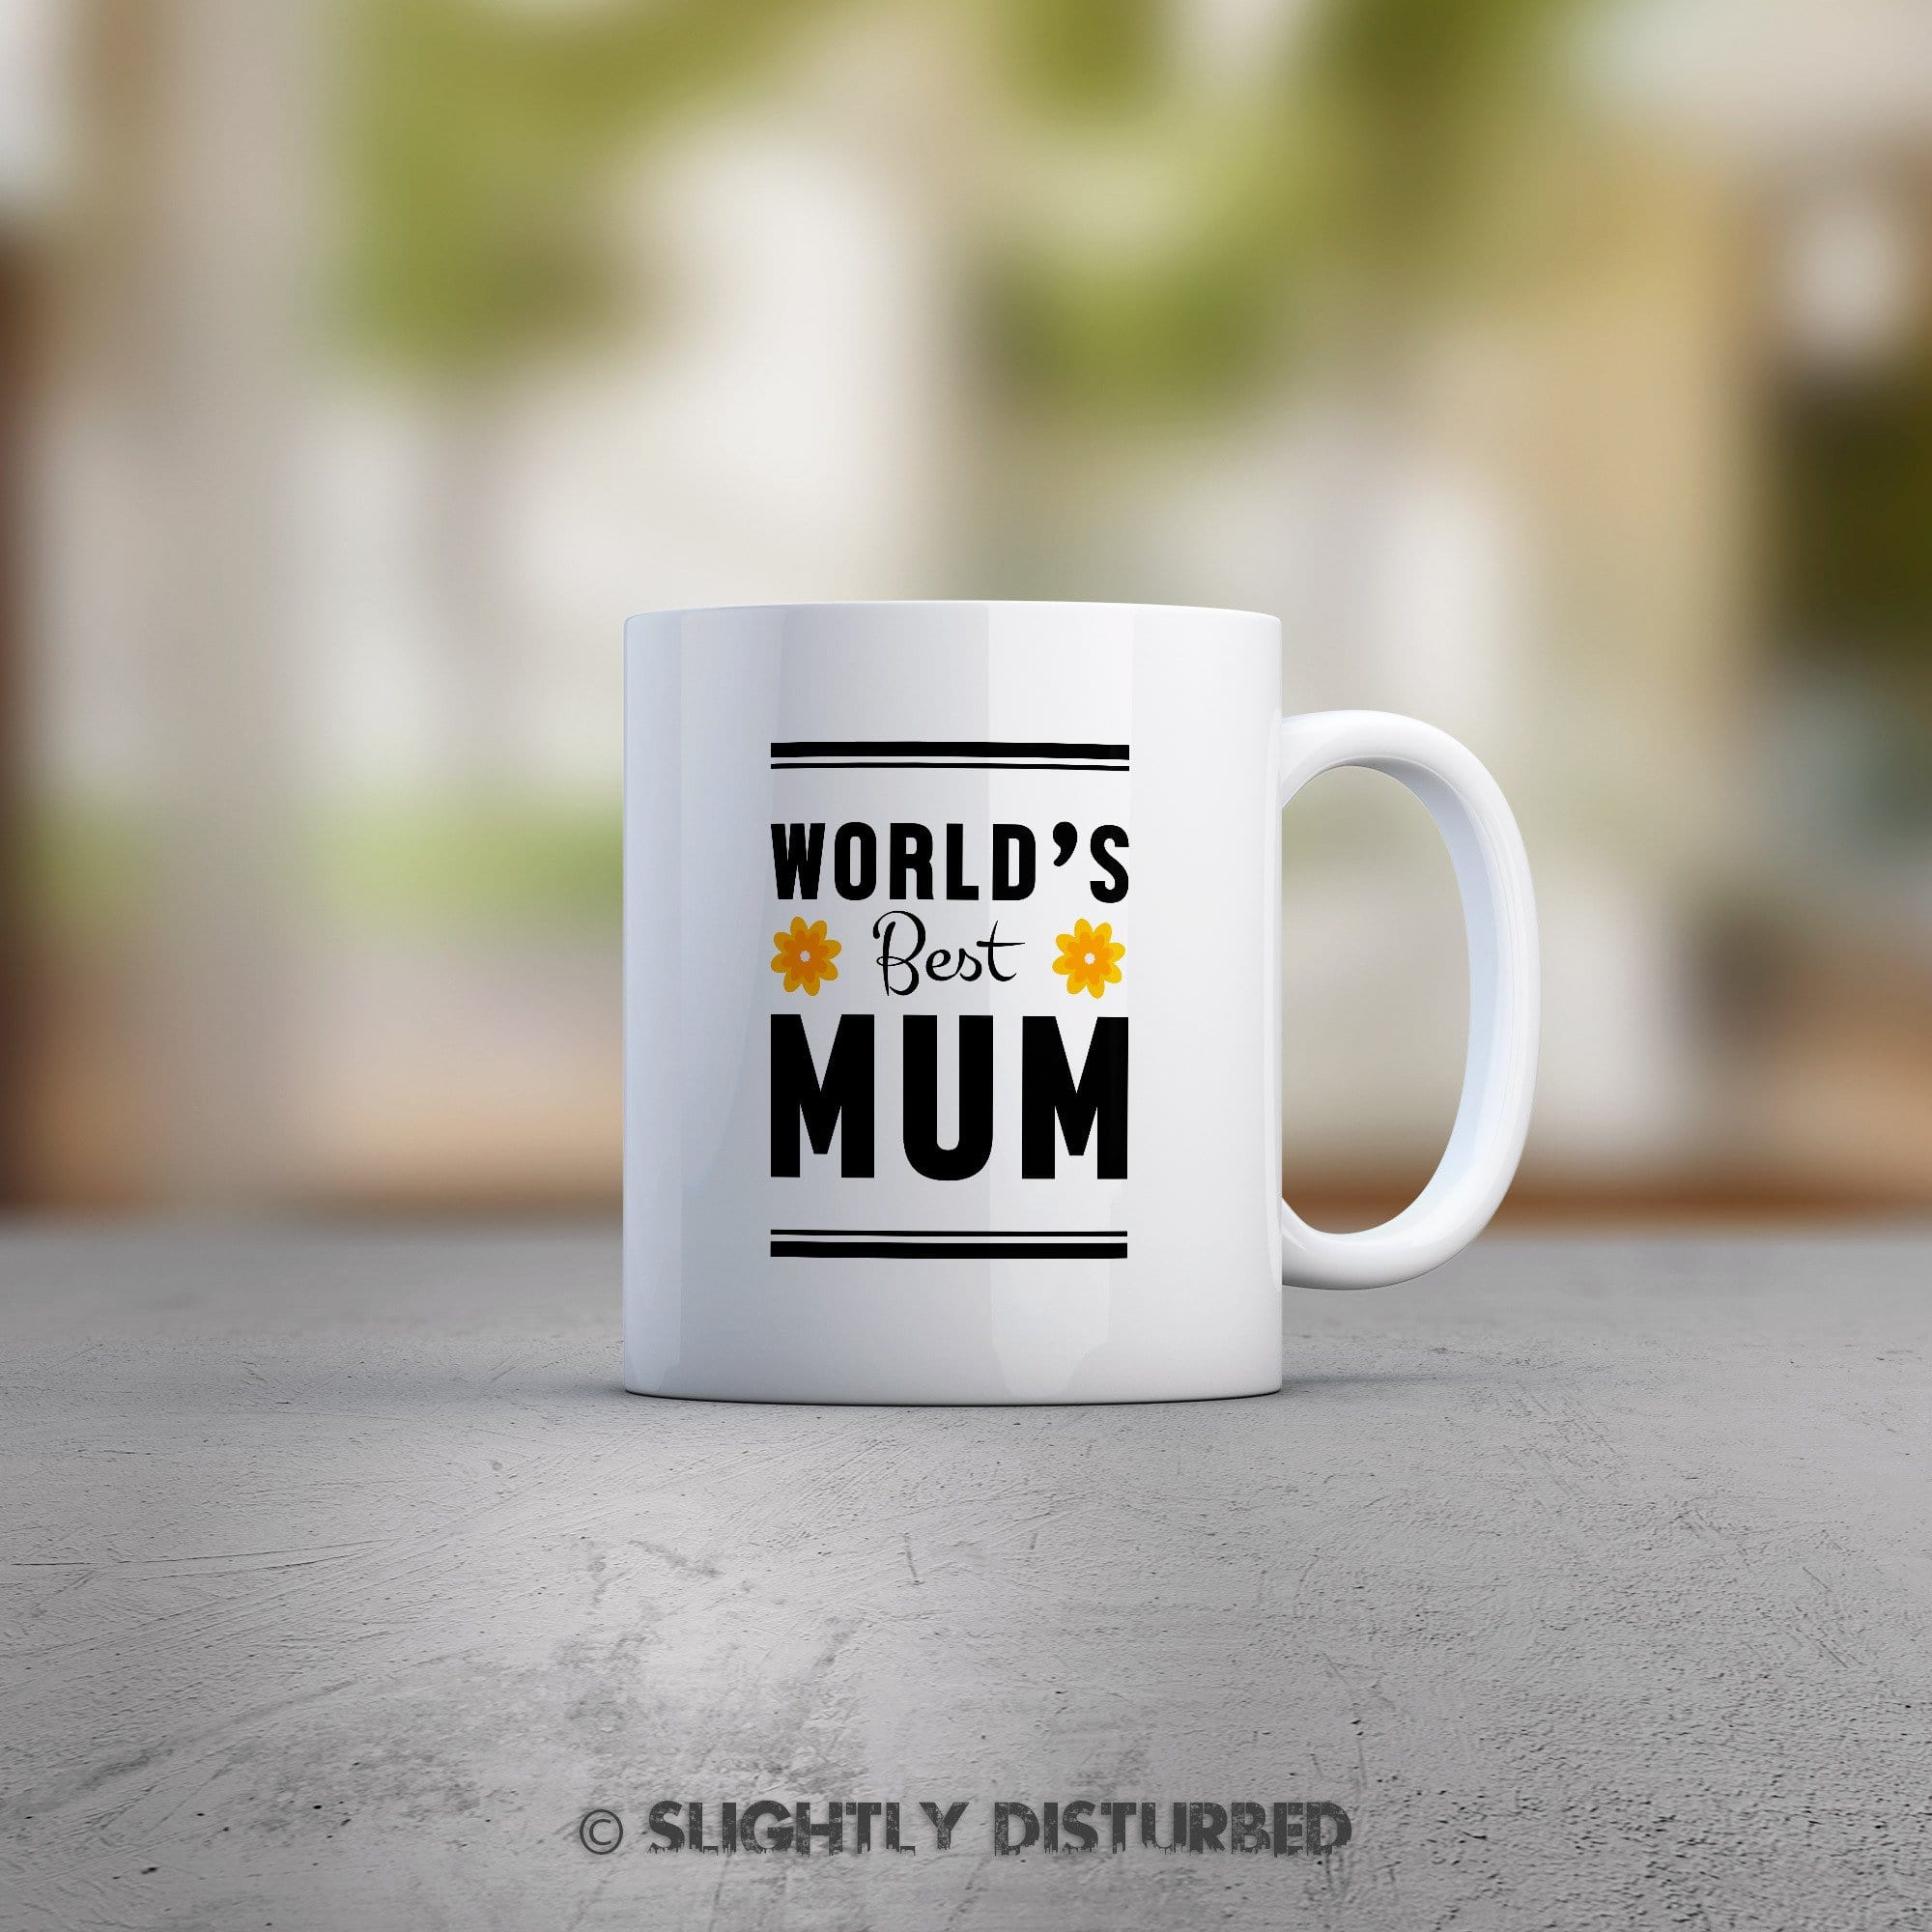 World's Best Mum Mug - Gifts For Mum - Slightly Disturbed